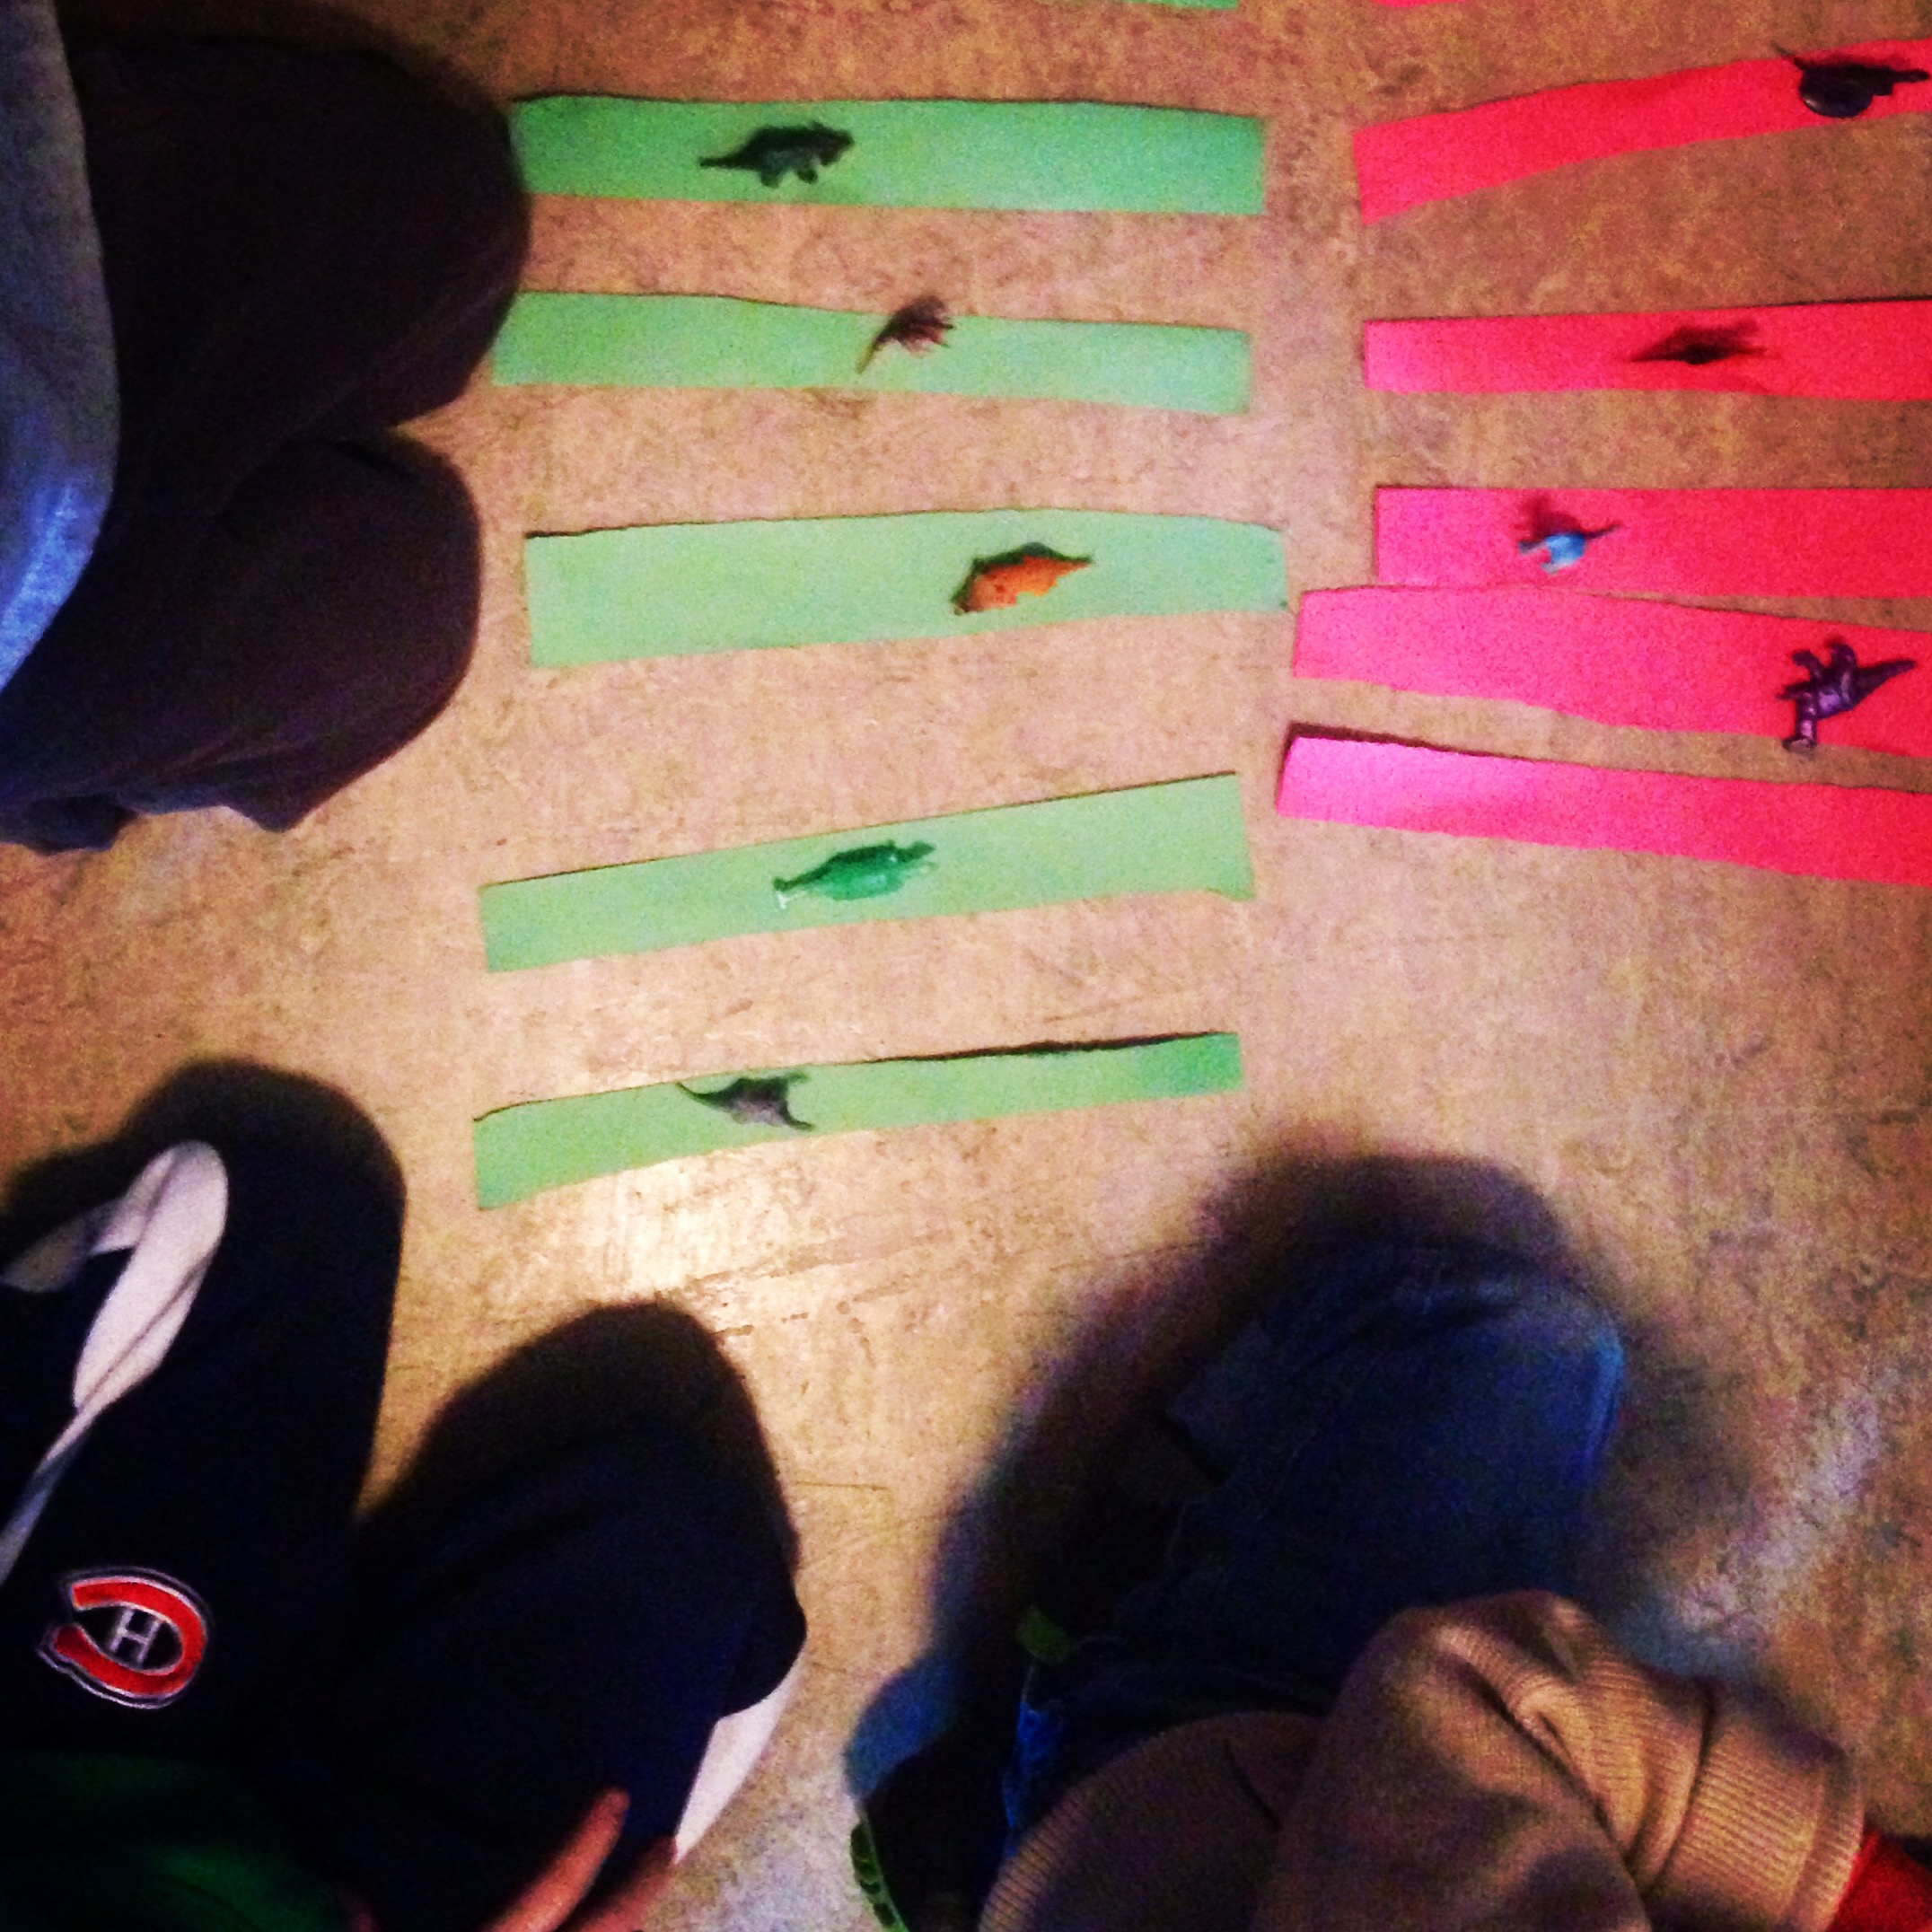 sorting and graphing dinosaurs